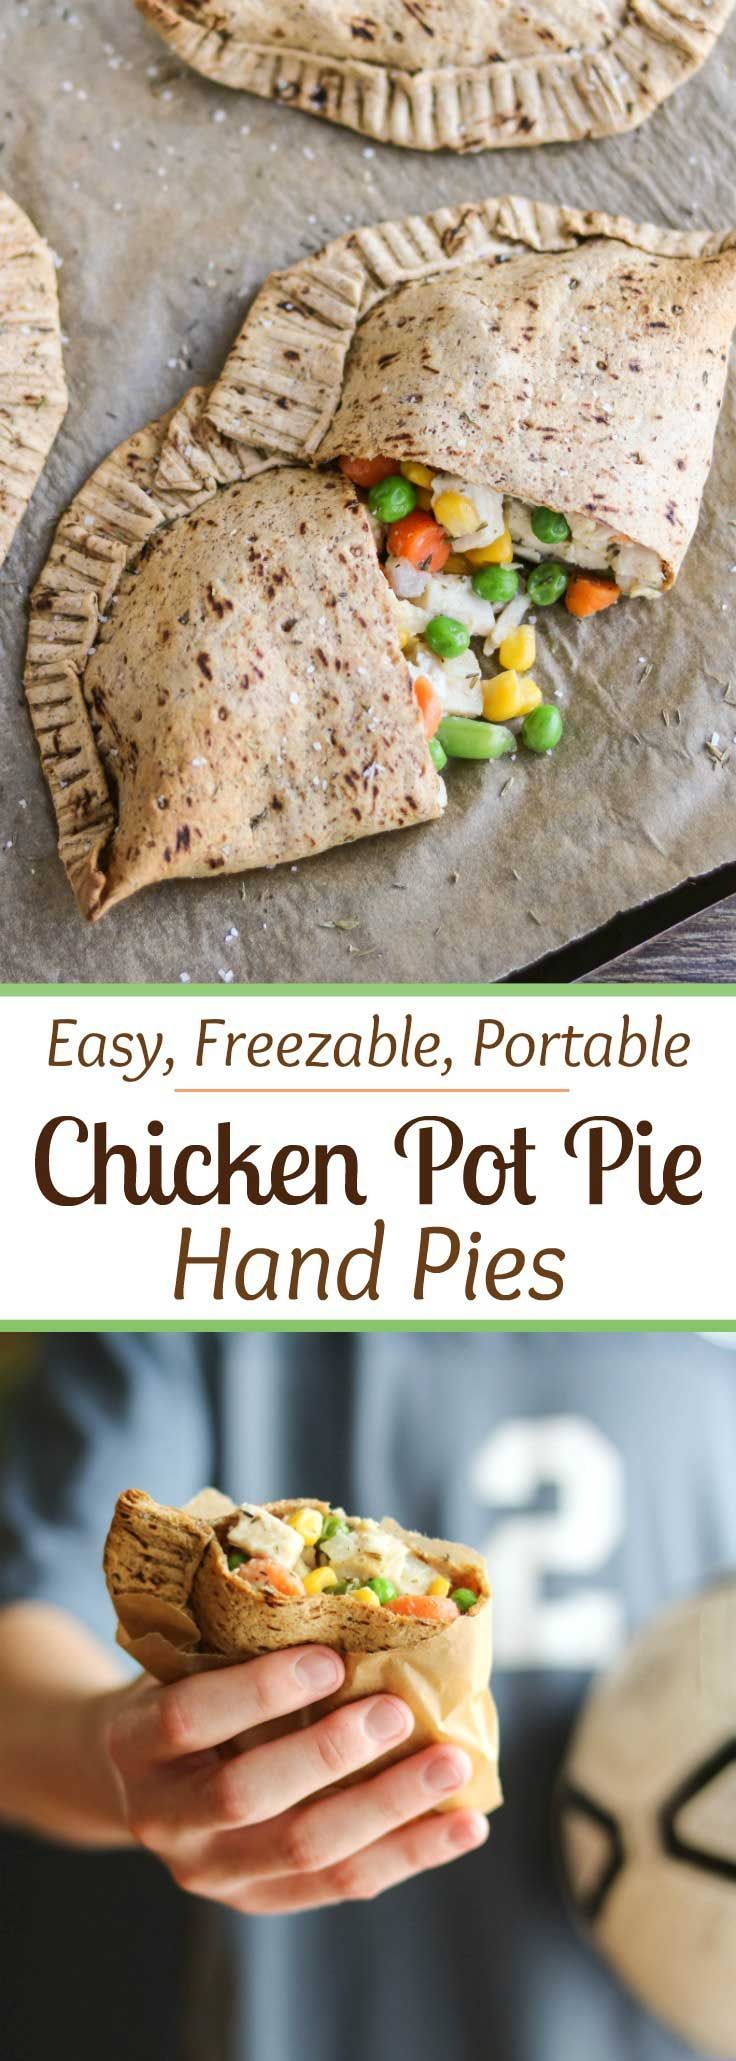 """Freezable make-ahead! Perfect grab-and-go meal for busy nights! Our Easy Chicken Pot Pie Hand Pies have all the comforting, homestyle goodness of traditional chicken pot pies, but are more nutritious and totally portable. Filled with yummy (kid-friendly) veggies and chunks of tender white-meat chicken, plus a creamy (but not too messy!) sauce. All wrapped in a healthier, thyme-seasoned pot pie crust. Stock your freezer with healthy homemade """"Hot Pockets""""! {ad} 